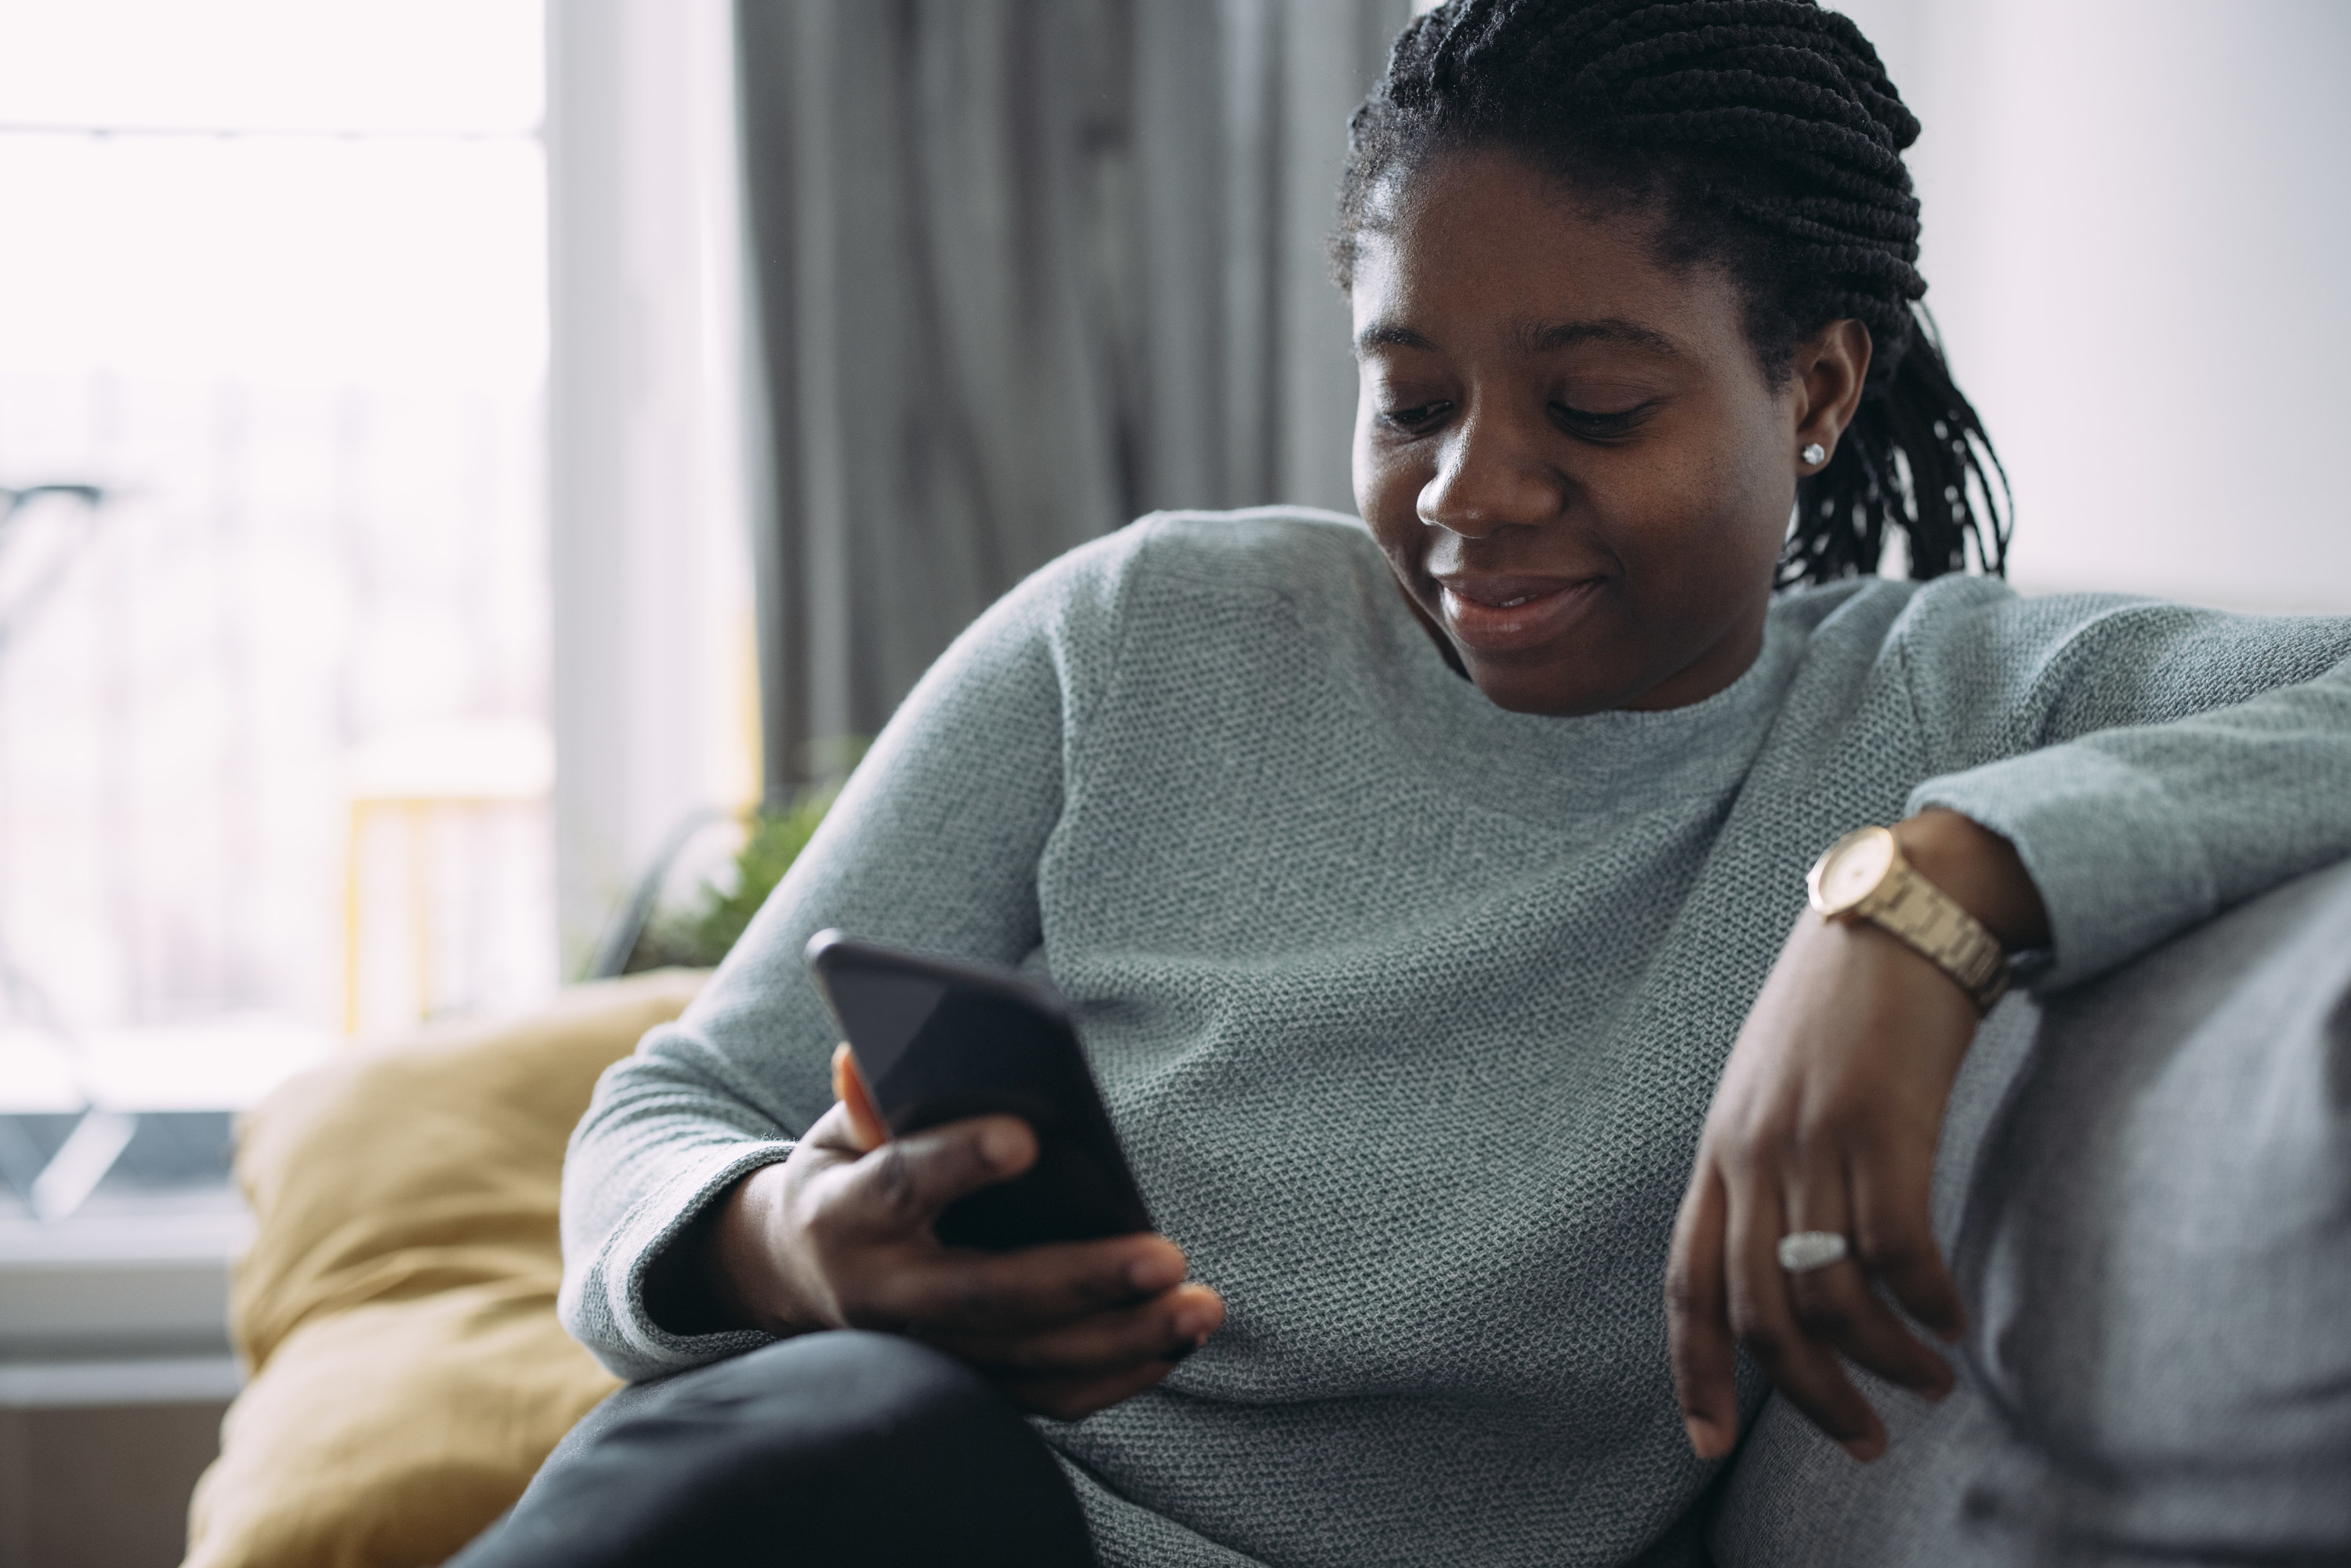 Woman smiles with using an app on her phone